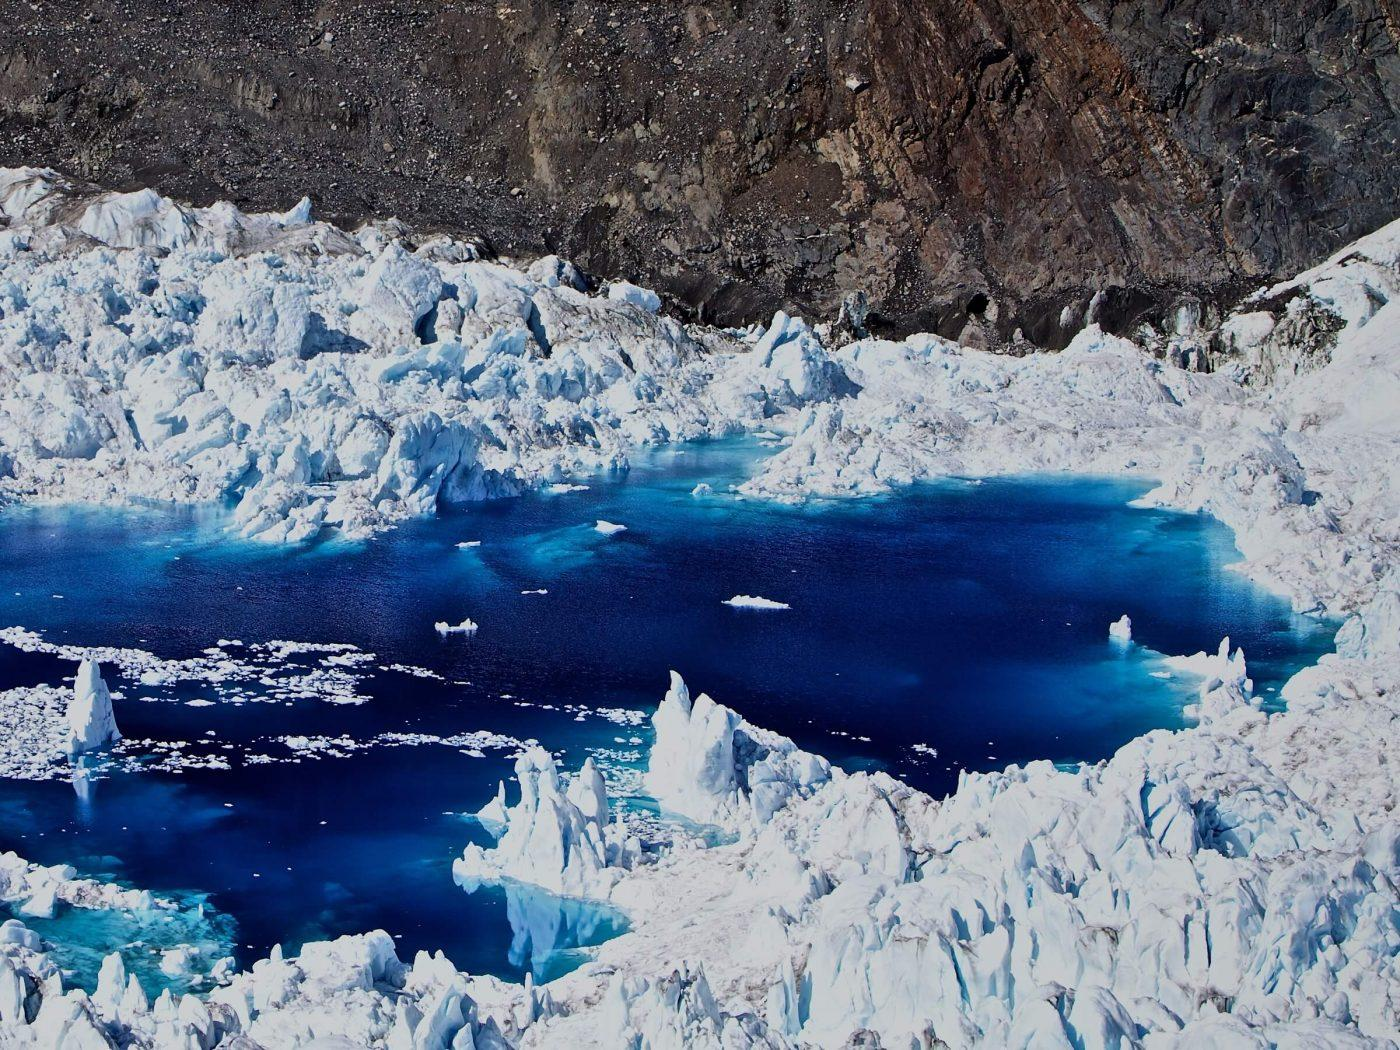 Meltwater lake at the Greenland ice cap, by Ace and Ace